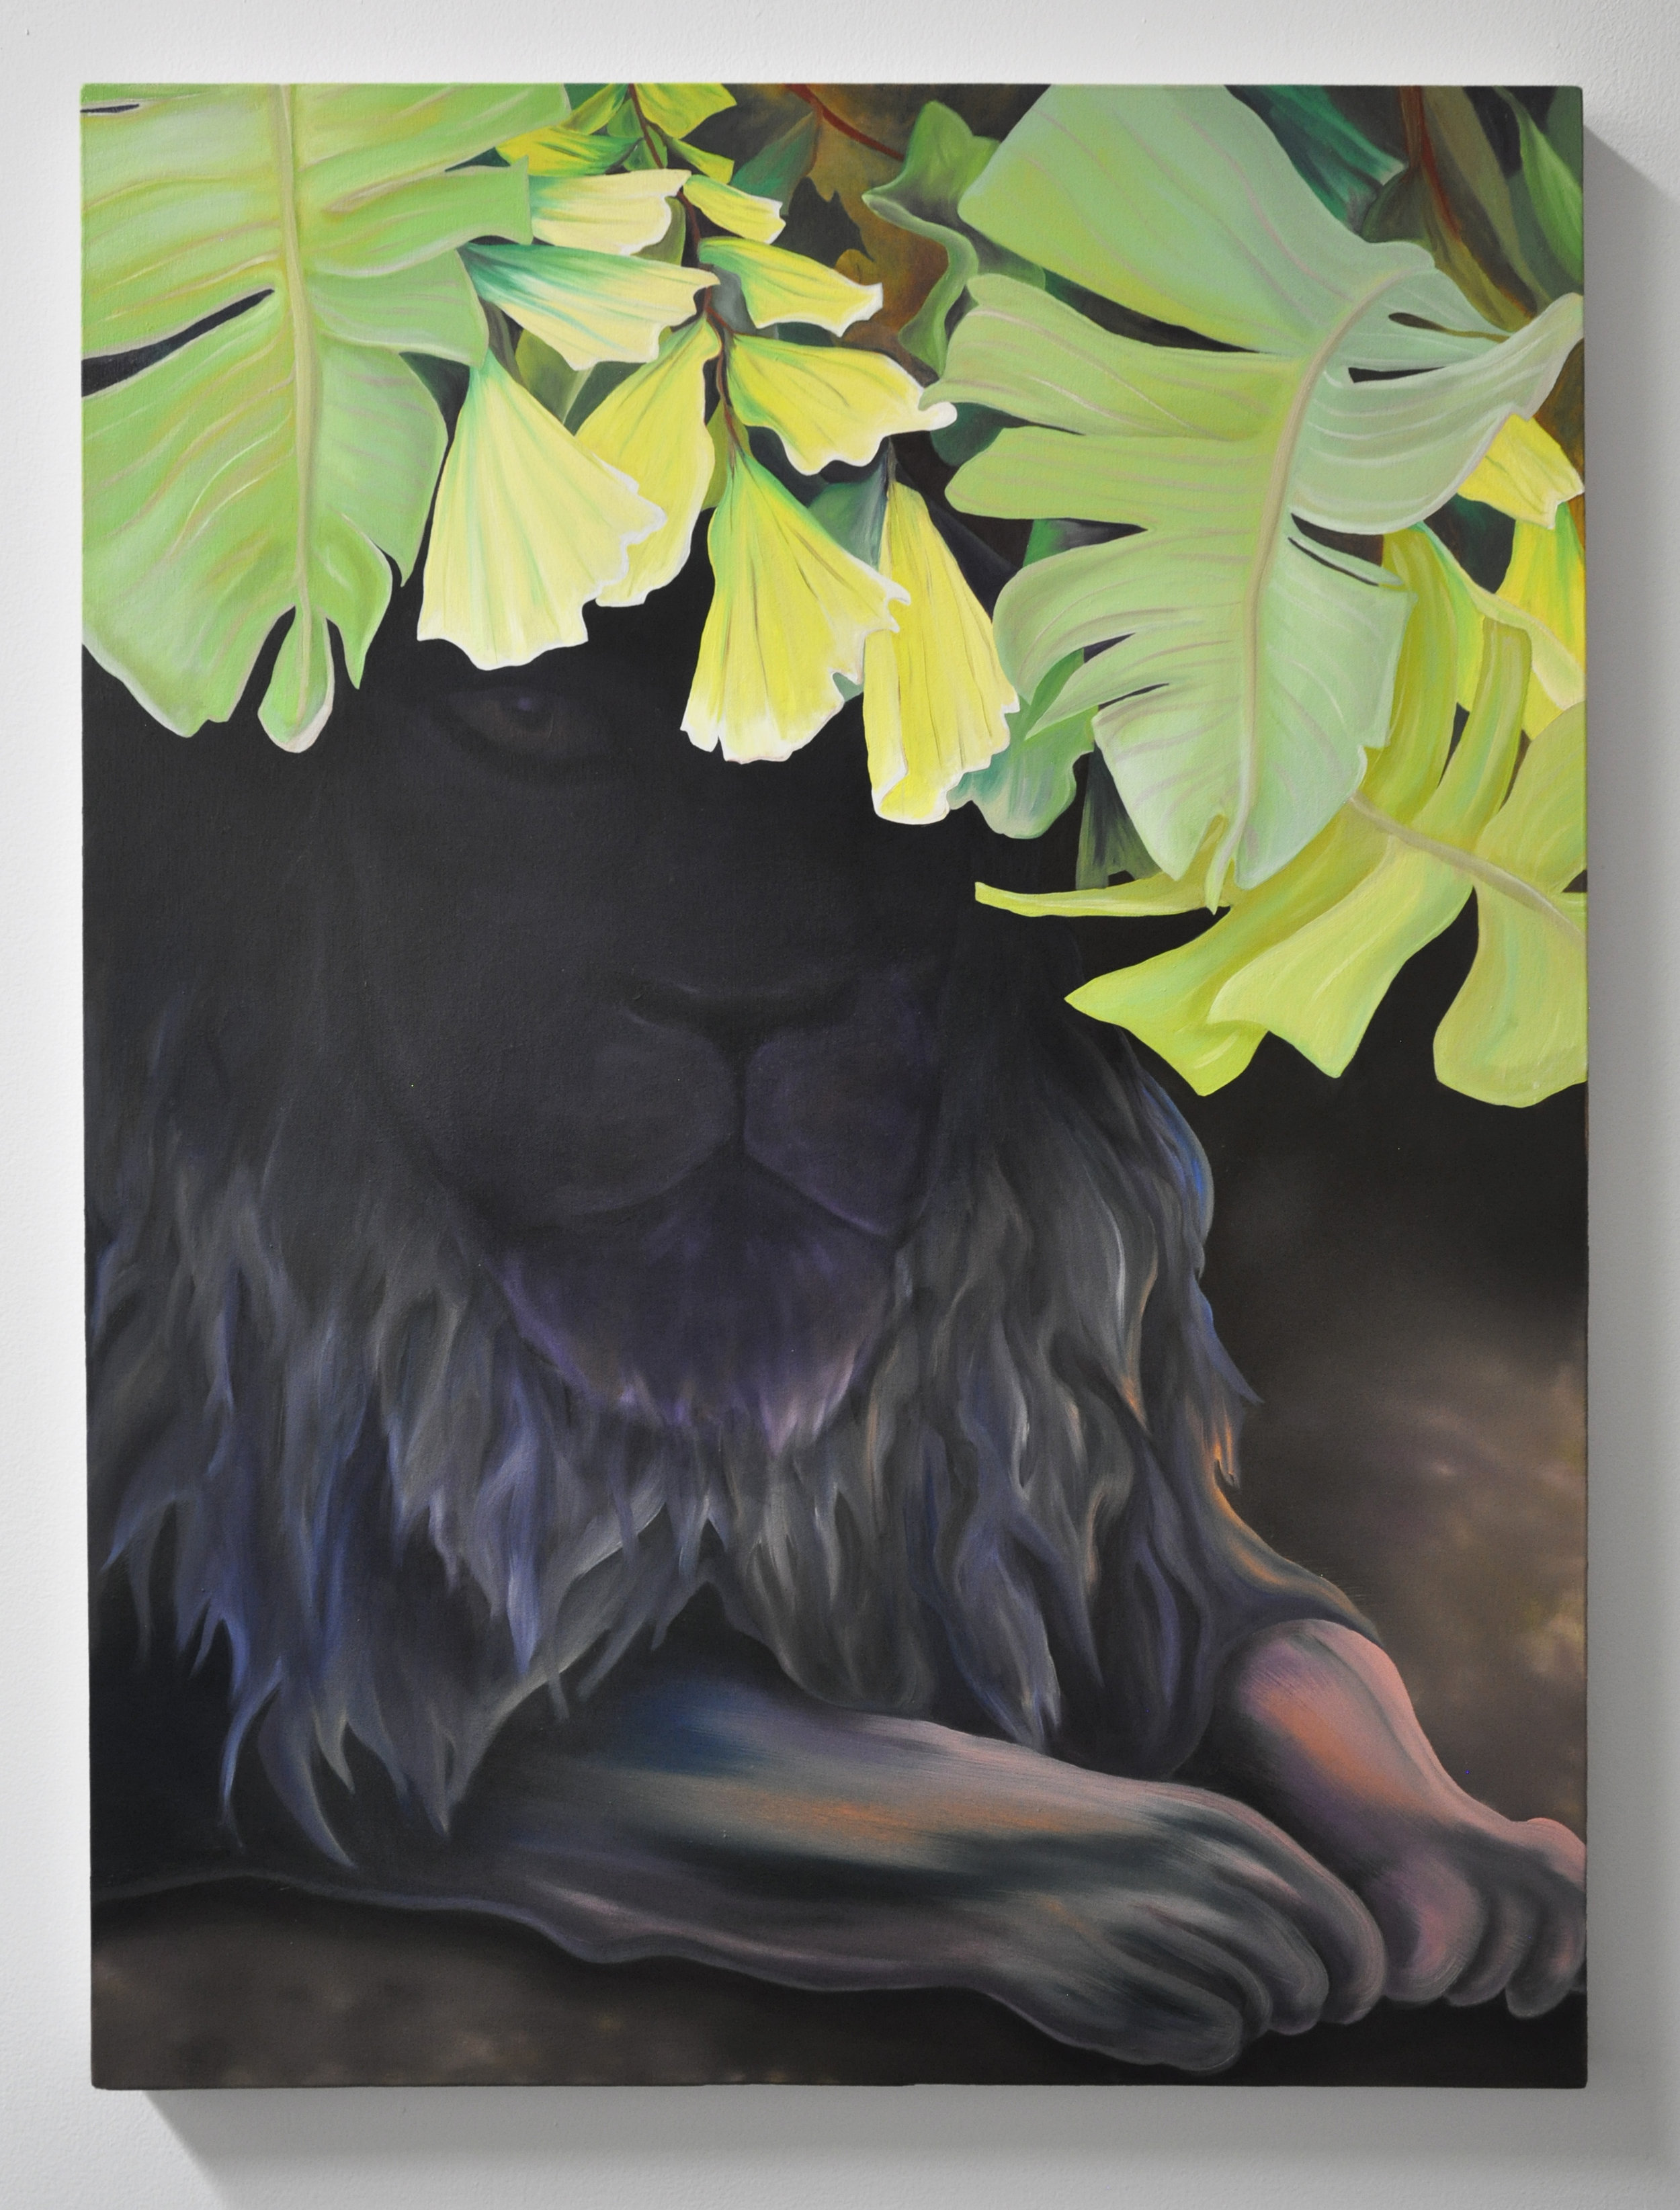 Courtney Johnson, Lion, 2019 Oil on canvas, 30 x 40 in, $3,500